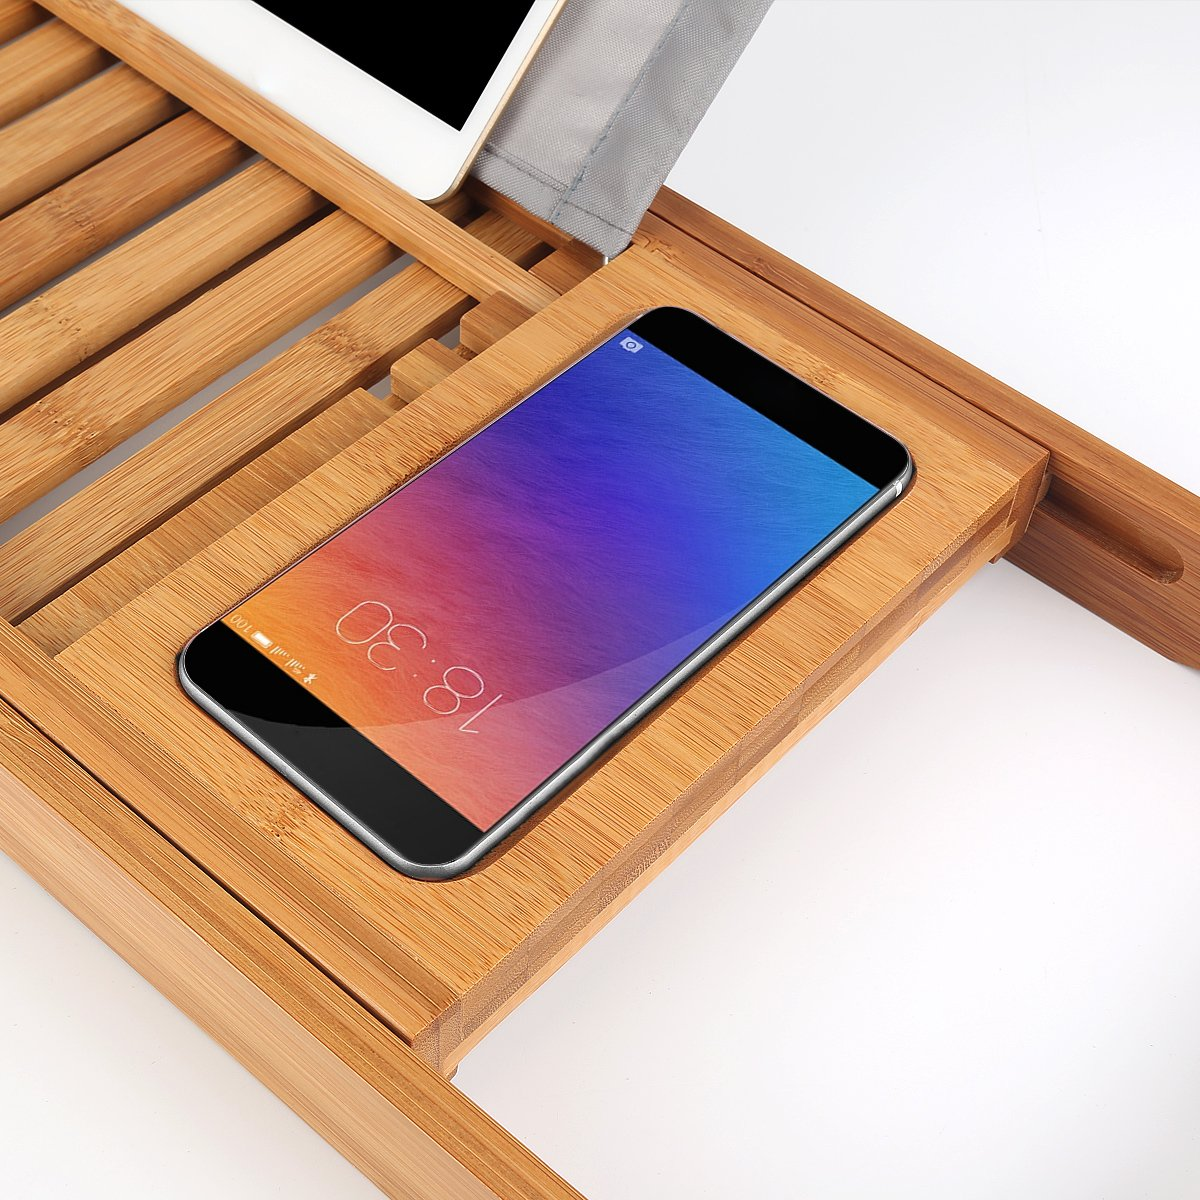 Bathtub Tray oobest Bamboo Bathtub Caddy Tray with Extending Sides Adjustable book holder with Premium Luxury Tray Organizer for Phone and Wineglass (Natural Bamboo Color) by oobest (Image #7)